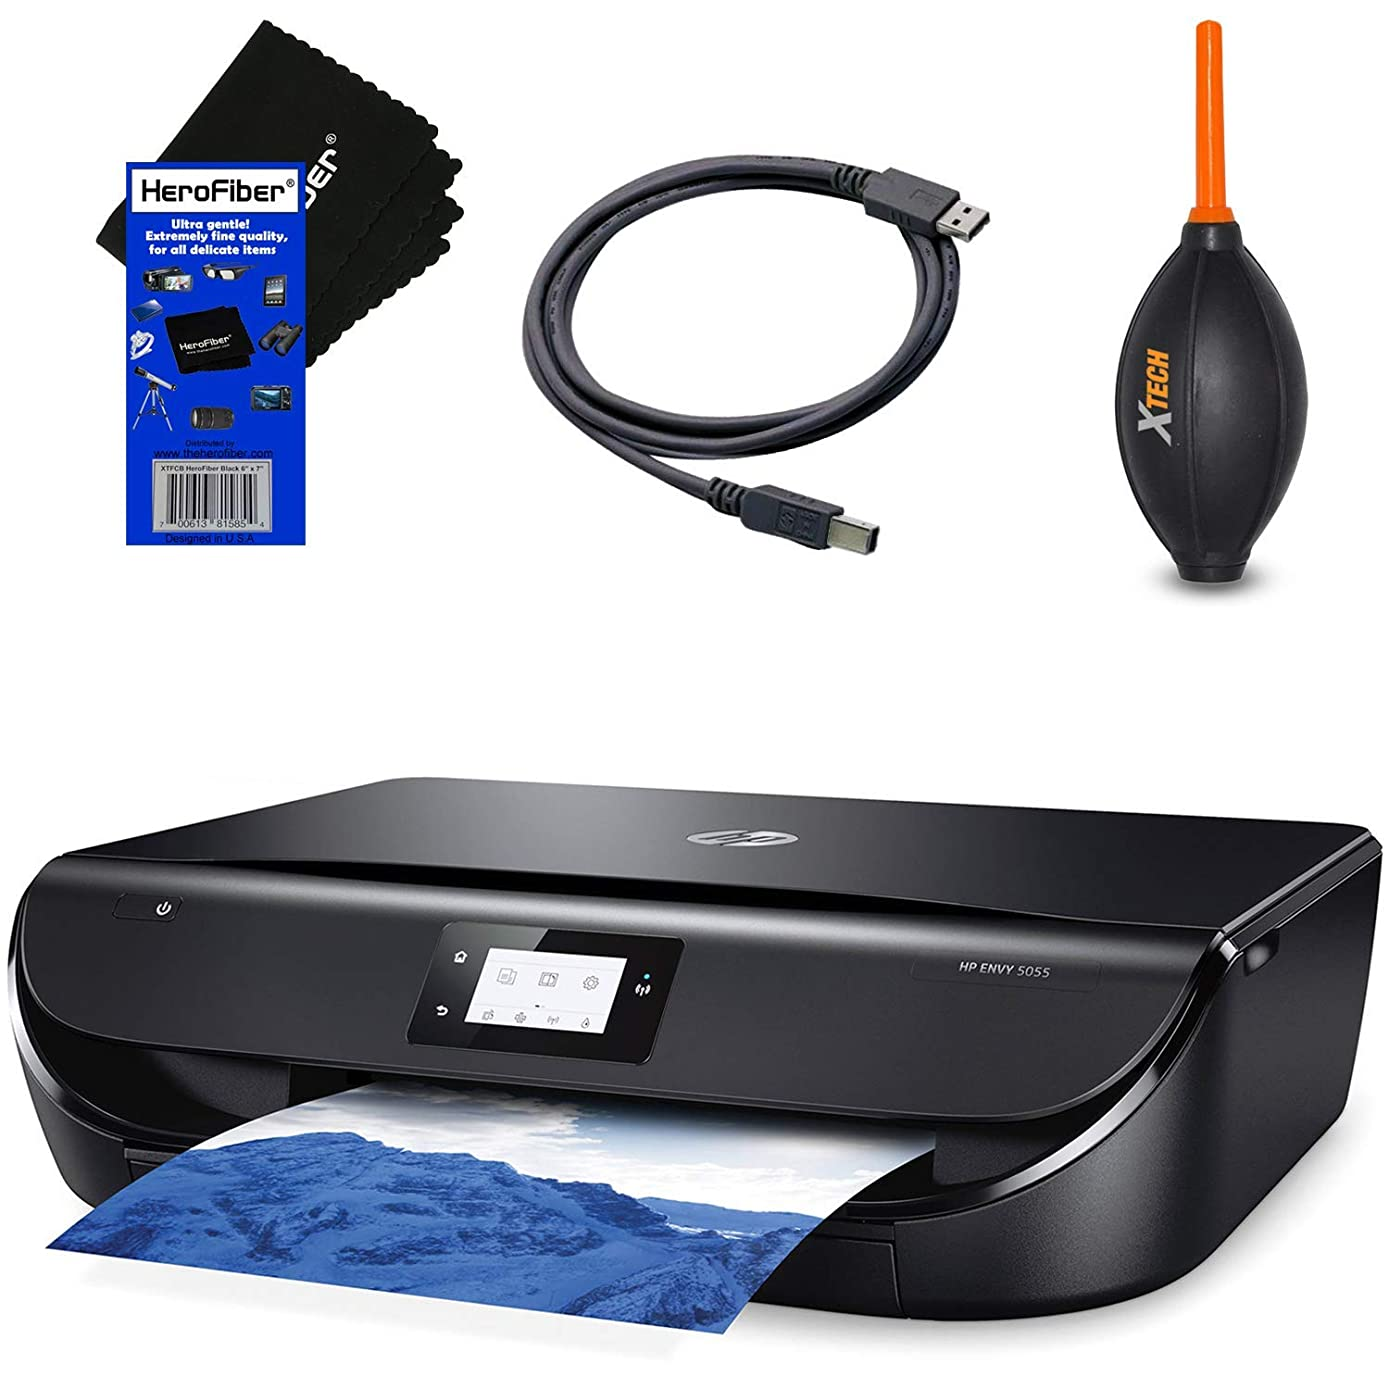 HeroFiber HP All-in-One Wireless Bluetooth Photo Printer Envy 5055 with Scanner Copier, Mobile/Document Printing + Ink Cartridges & Optional Instant Ink Subscription + USB Cable, Blower & HeroFiber